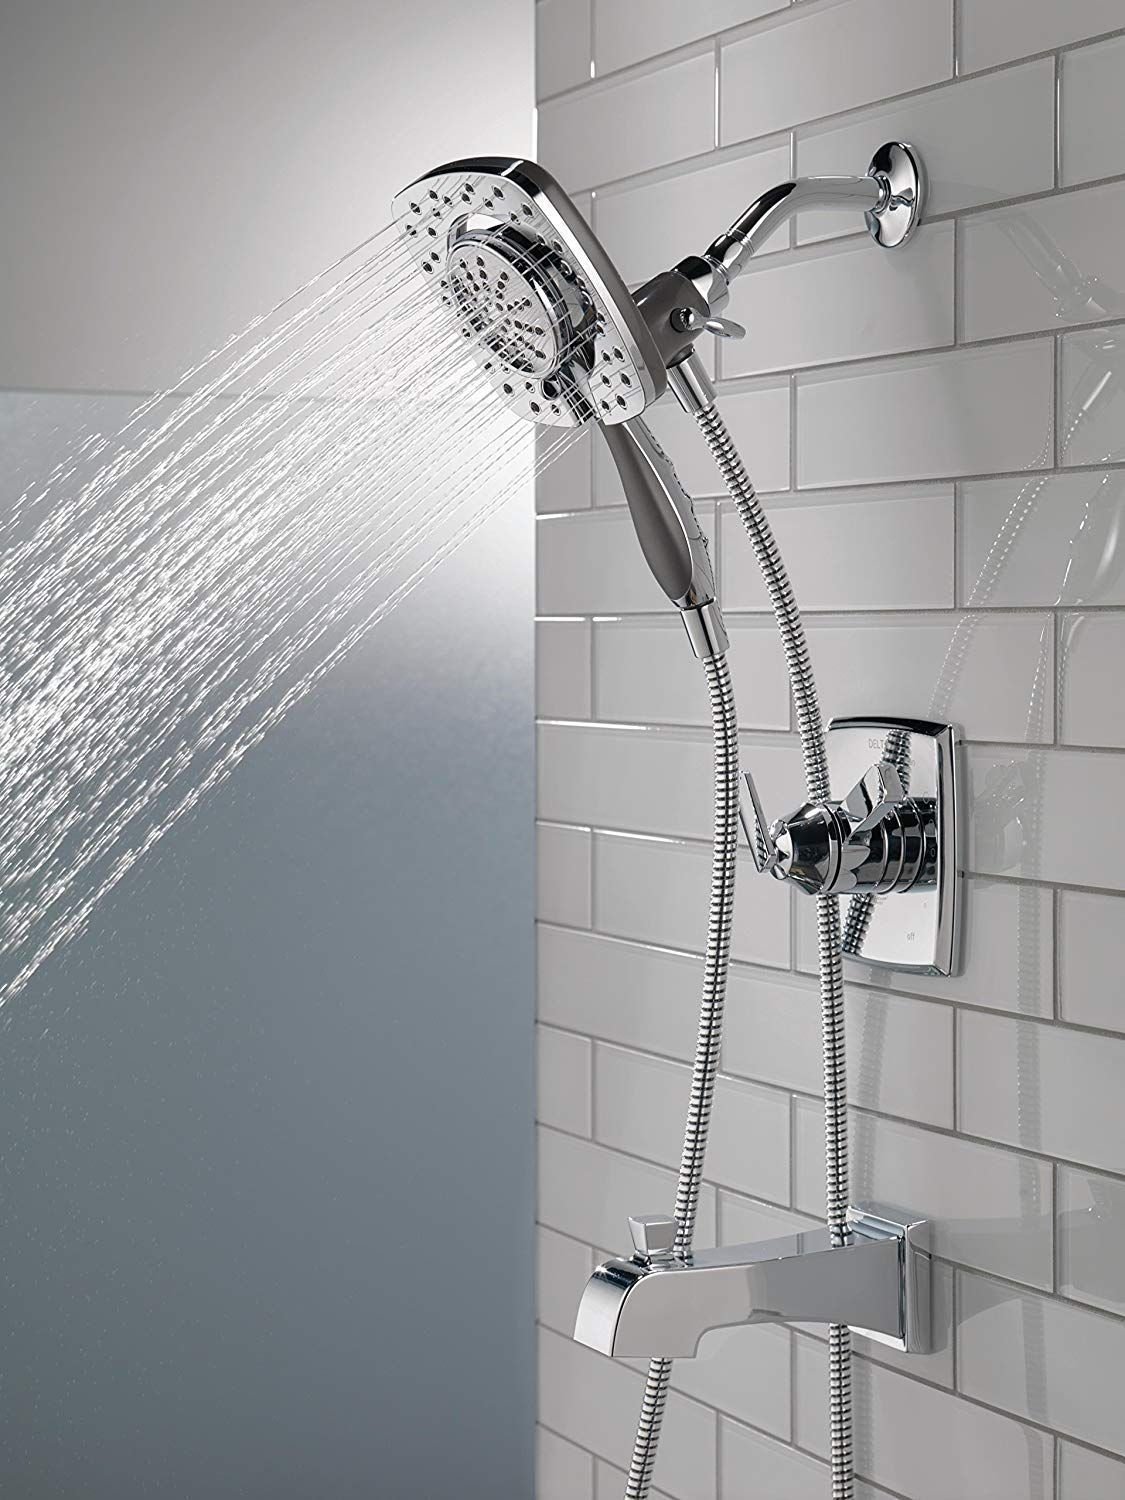 Chrome Has Rapidly Become One Of The Most Popular Finishes Across Decor Styles In The Bath Thanks To Its S Shower Faucet Tub And Shower Faucets Shower Diverter